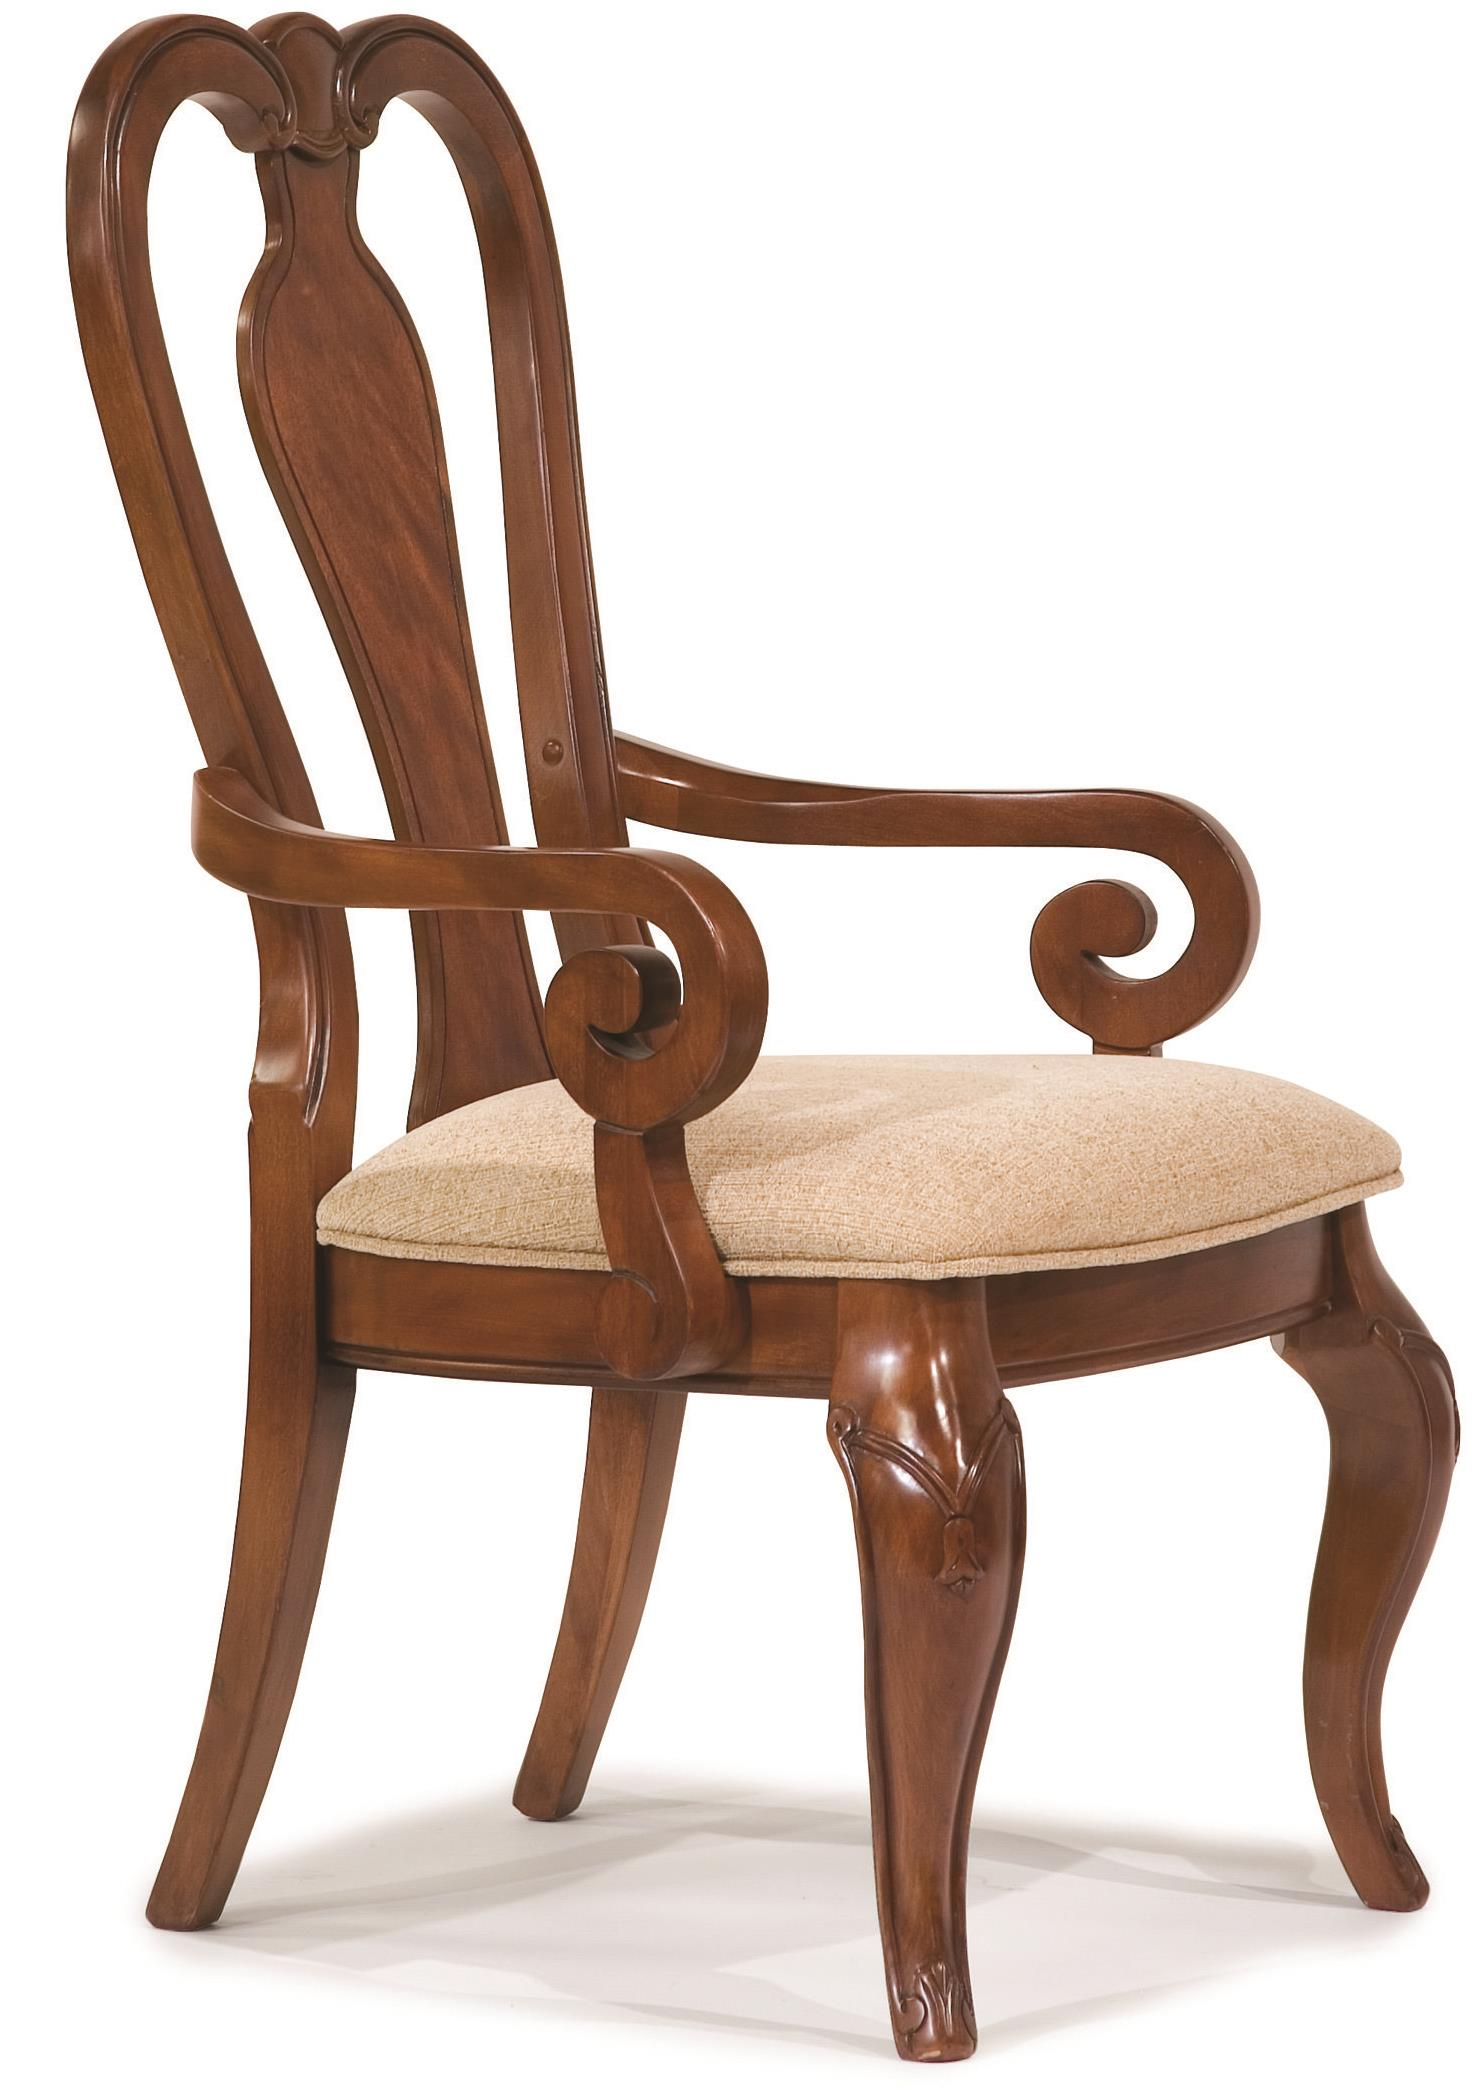 Legacy classic evolution 9180 141 kd queen anne arm chair for Legacy classic dining room furniture